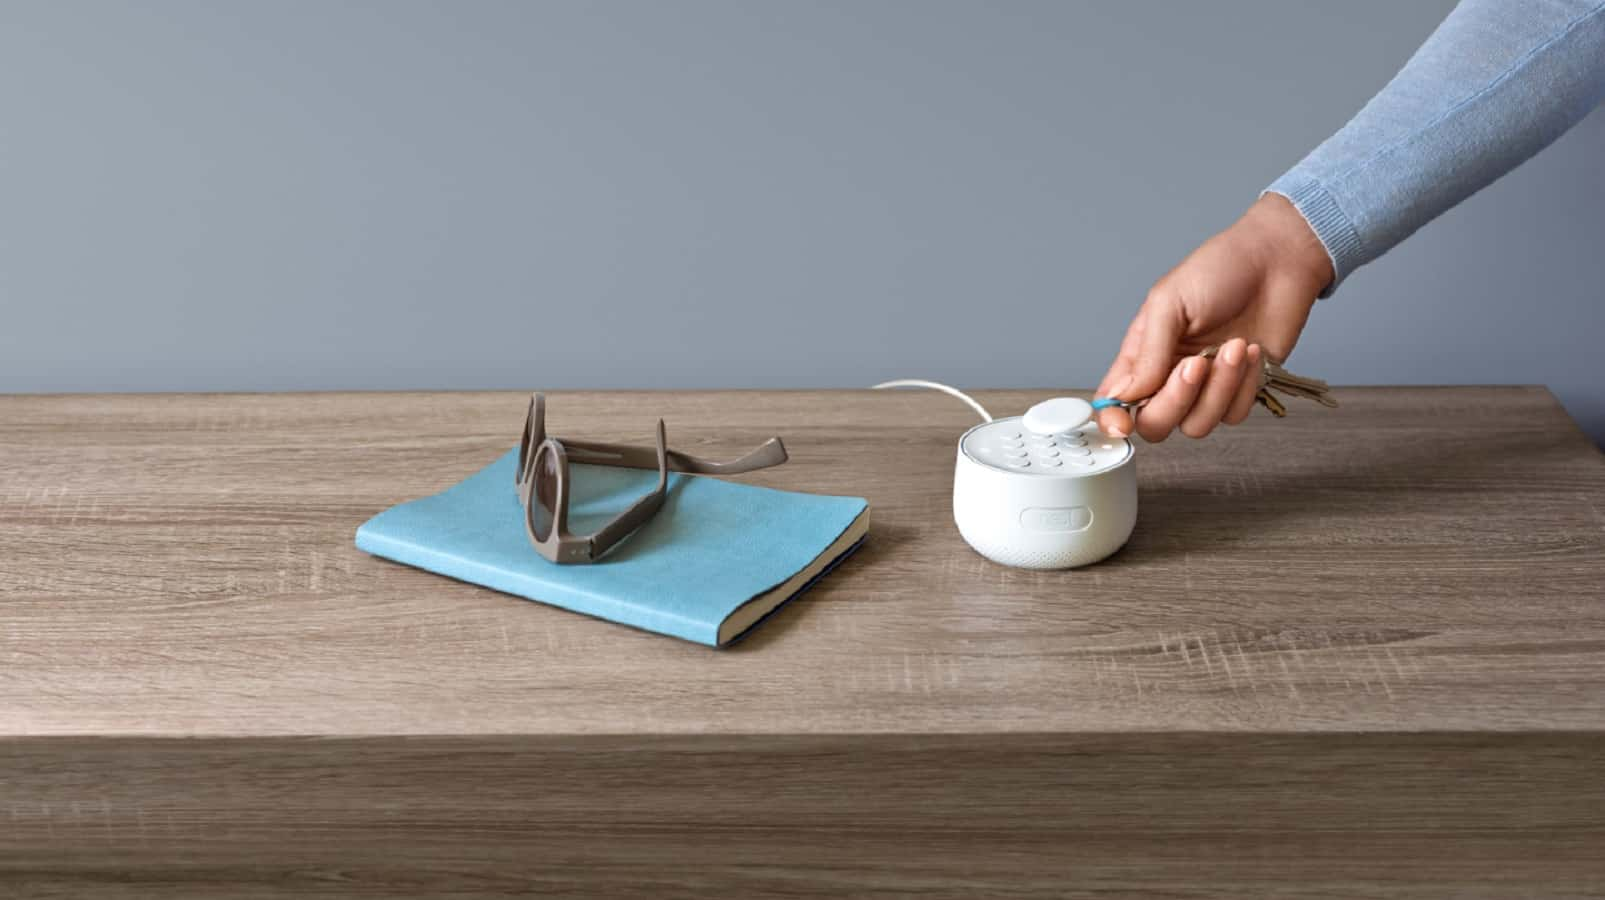 nest guard on table being used